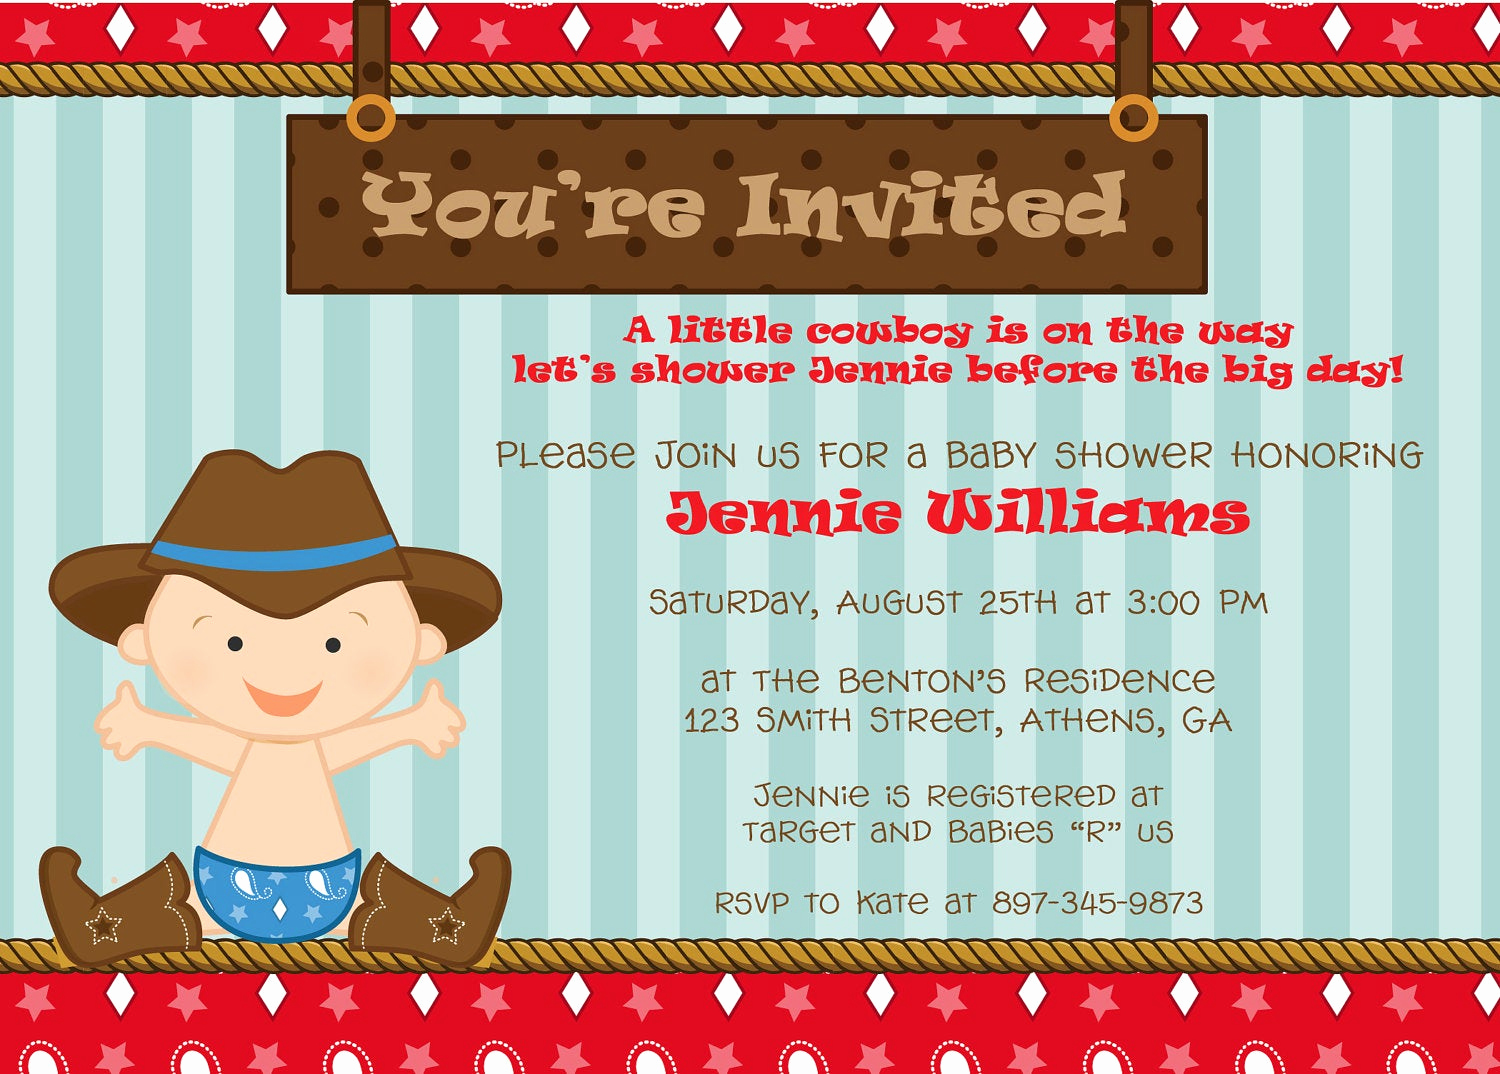 Cute Baby Shower Invitation Ideas Best Of Cute Cowboy Baby Shower Invitation or Birthday Invitation